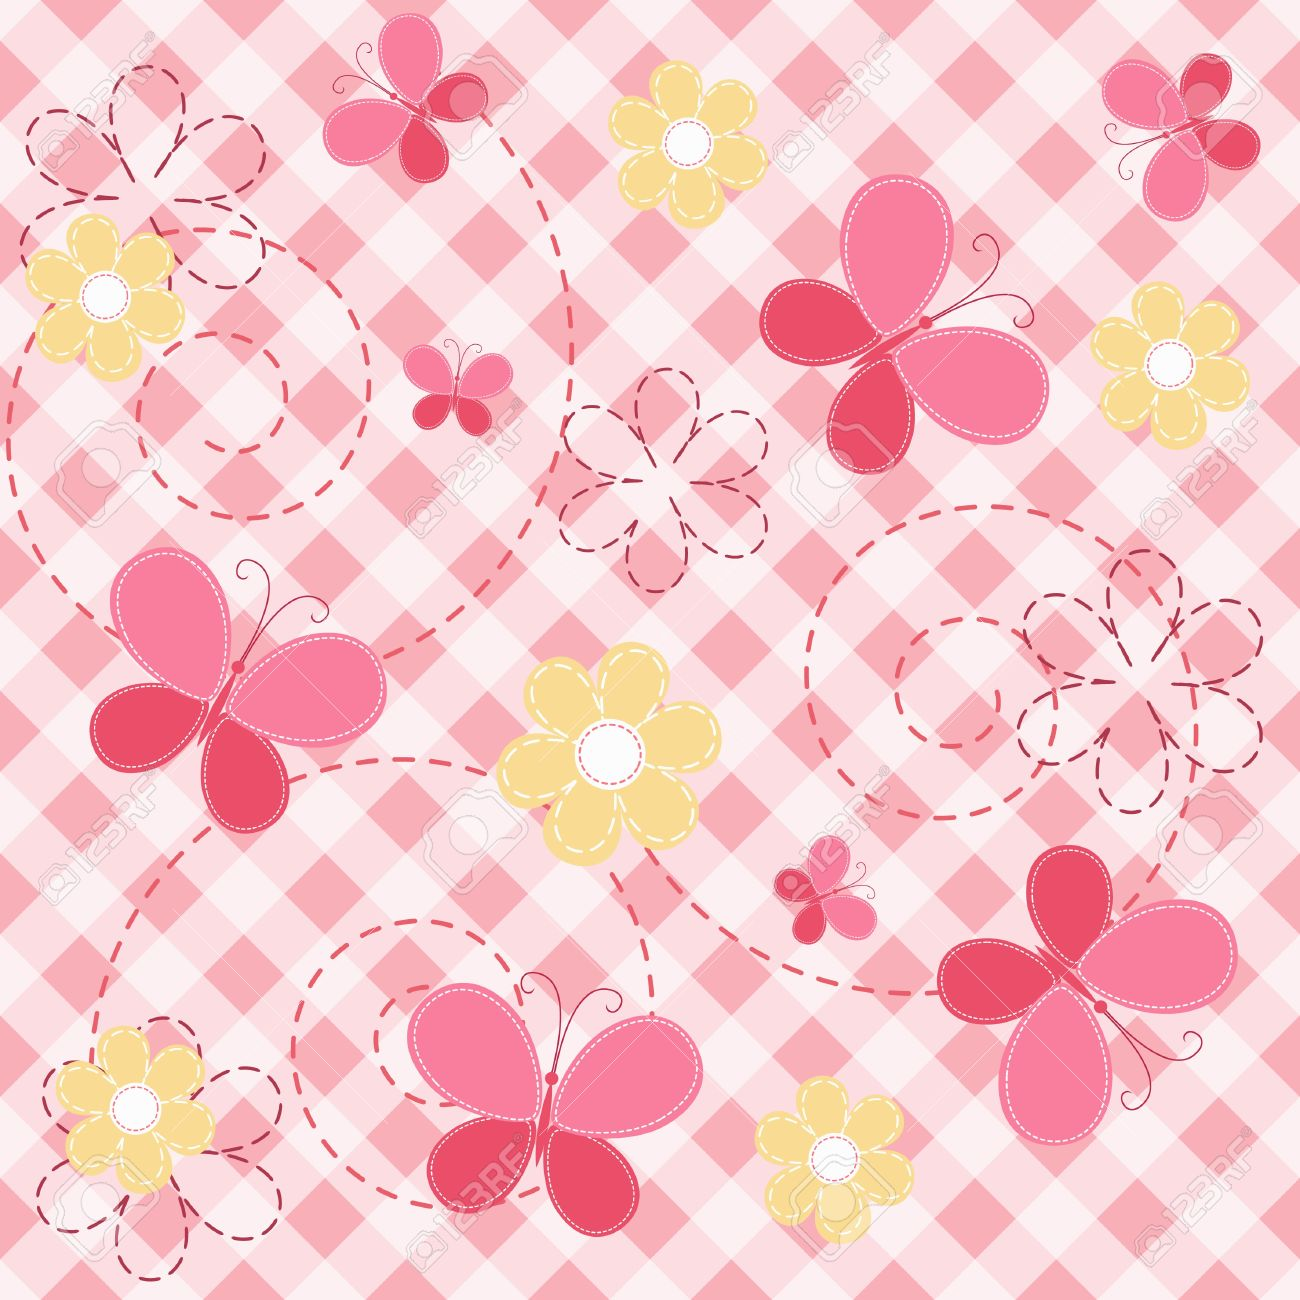 Pink butterfly vector background hd wallpapers pink butterfly vector - Pink Baby Seamless With Butterfly Stock Vector 12485697